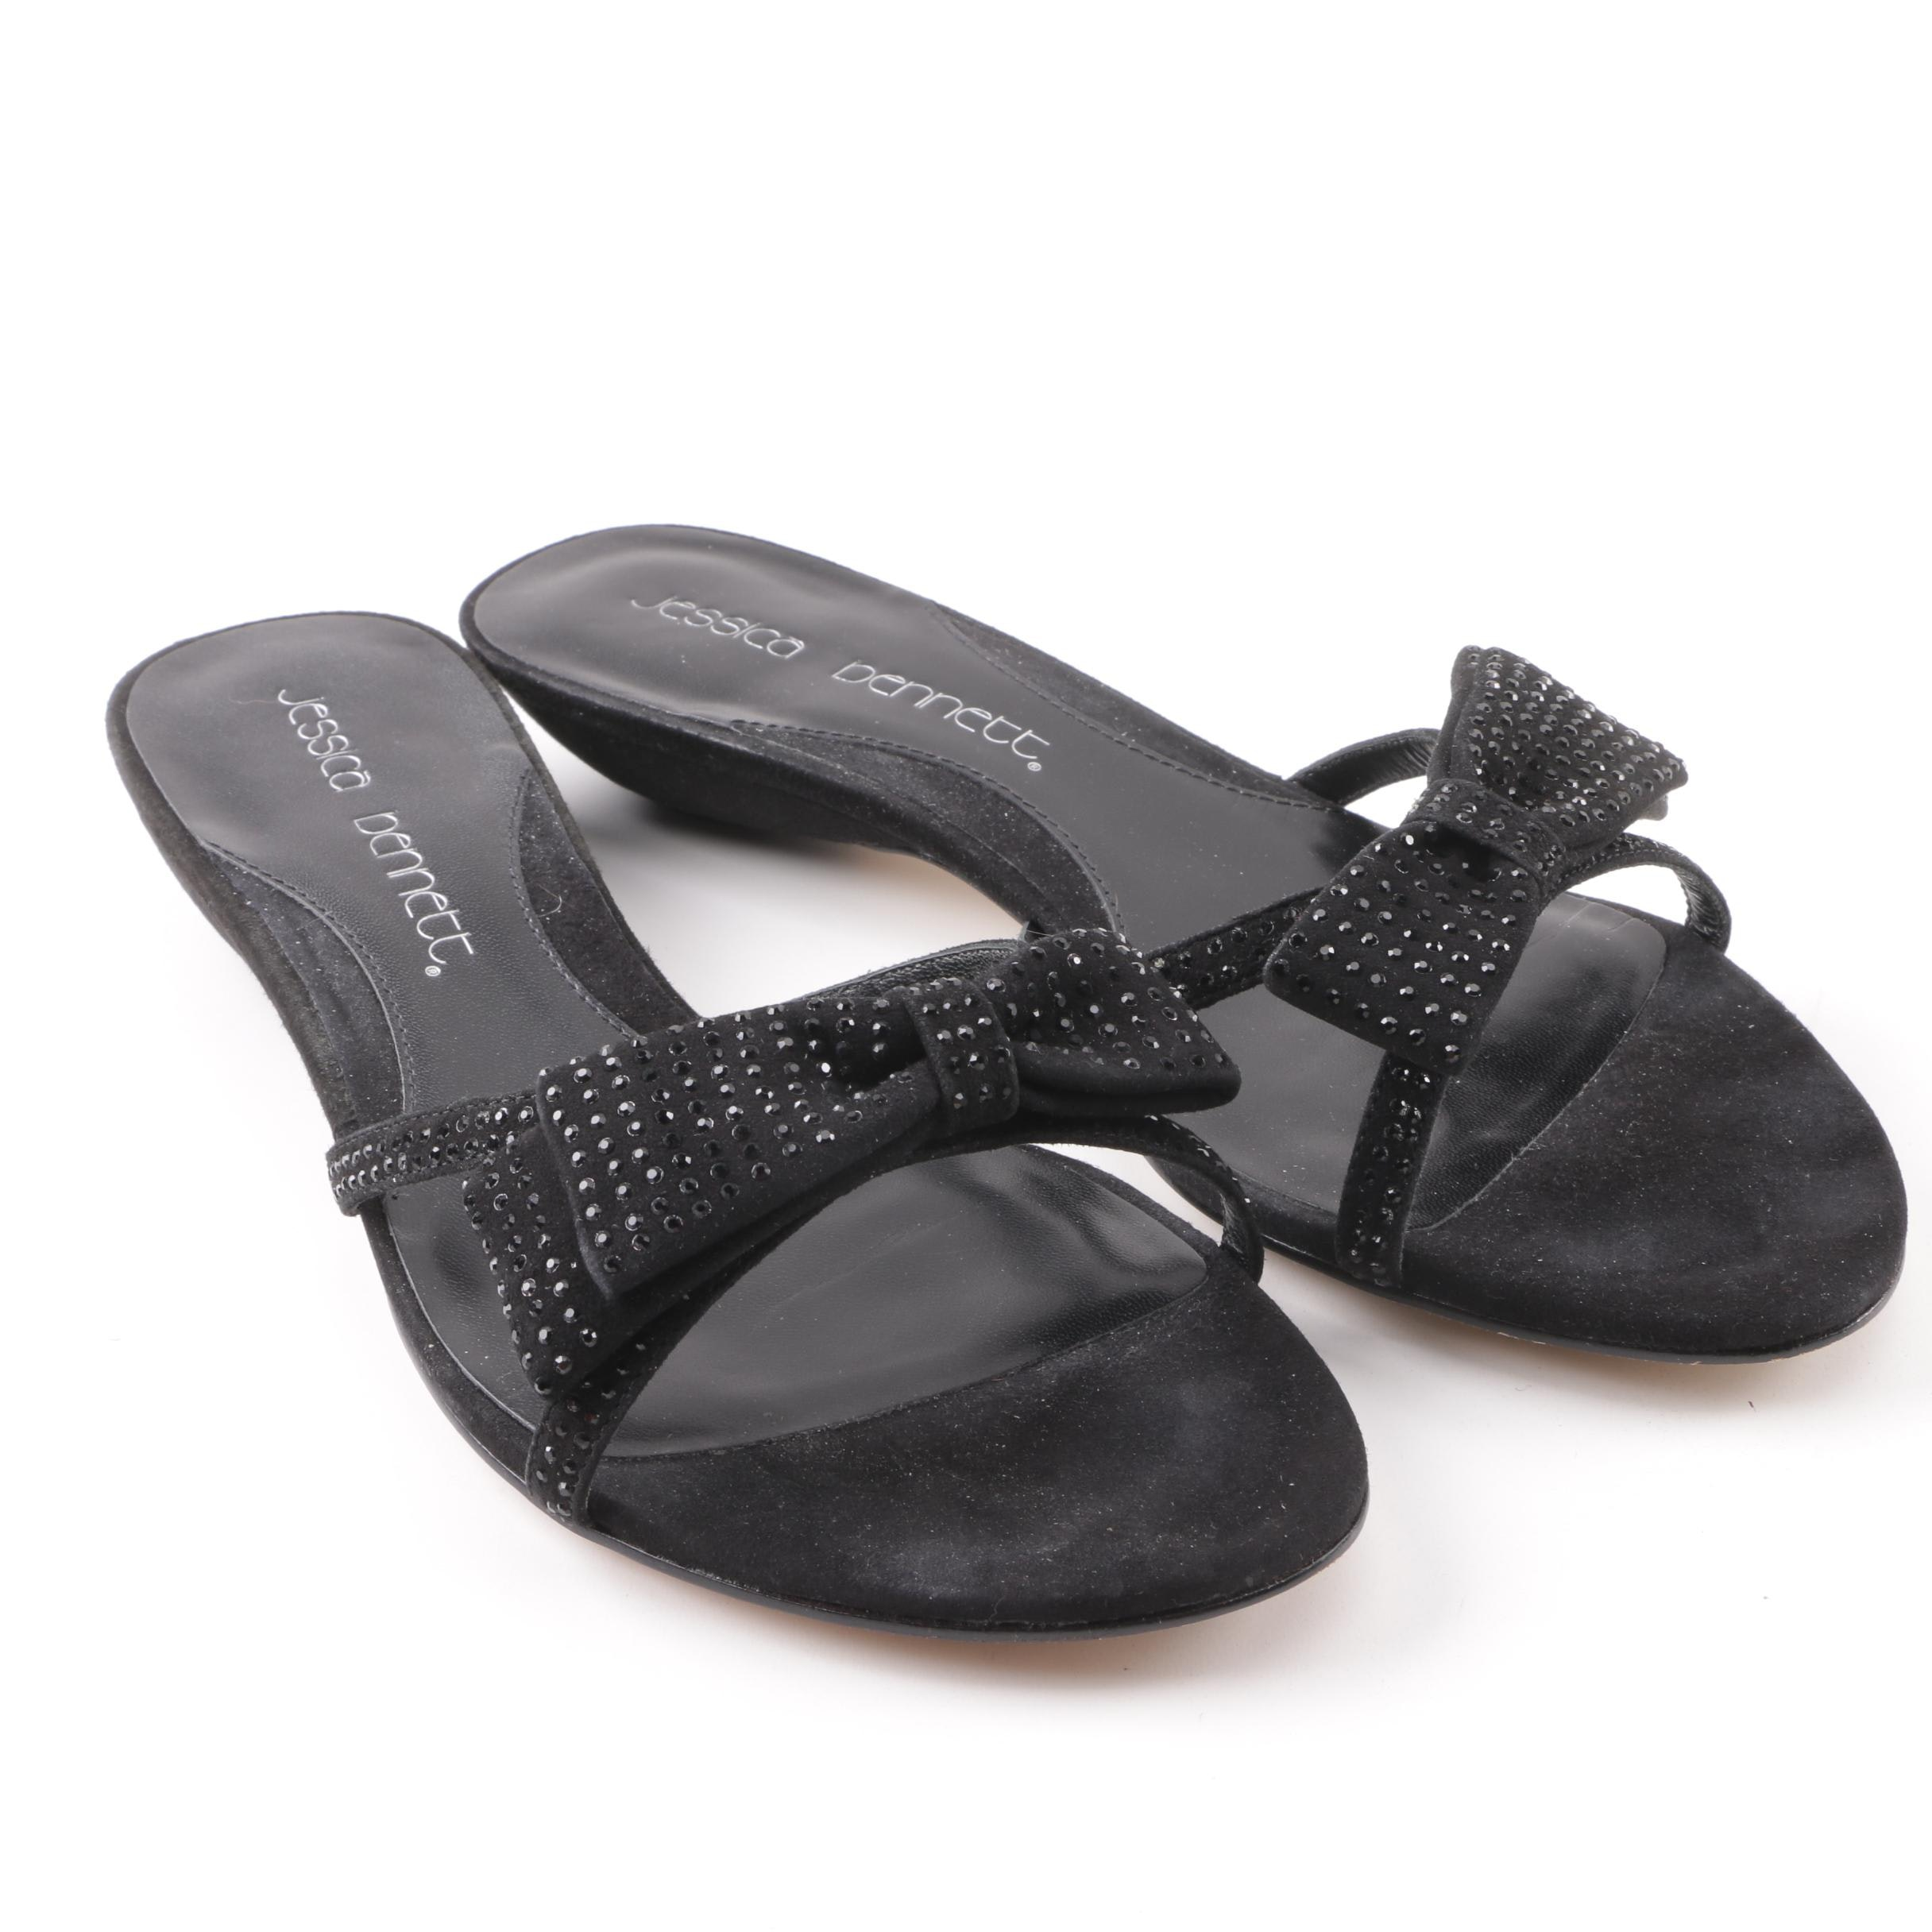 Jessica Bennett Black Suede Sandals with Flat Bow and Rhinestone Embellishments